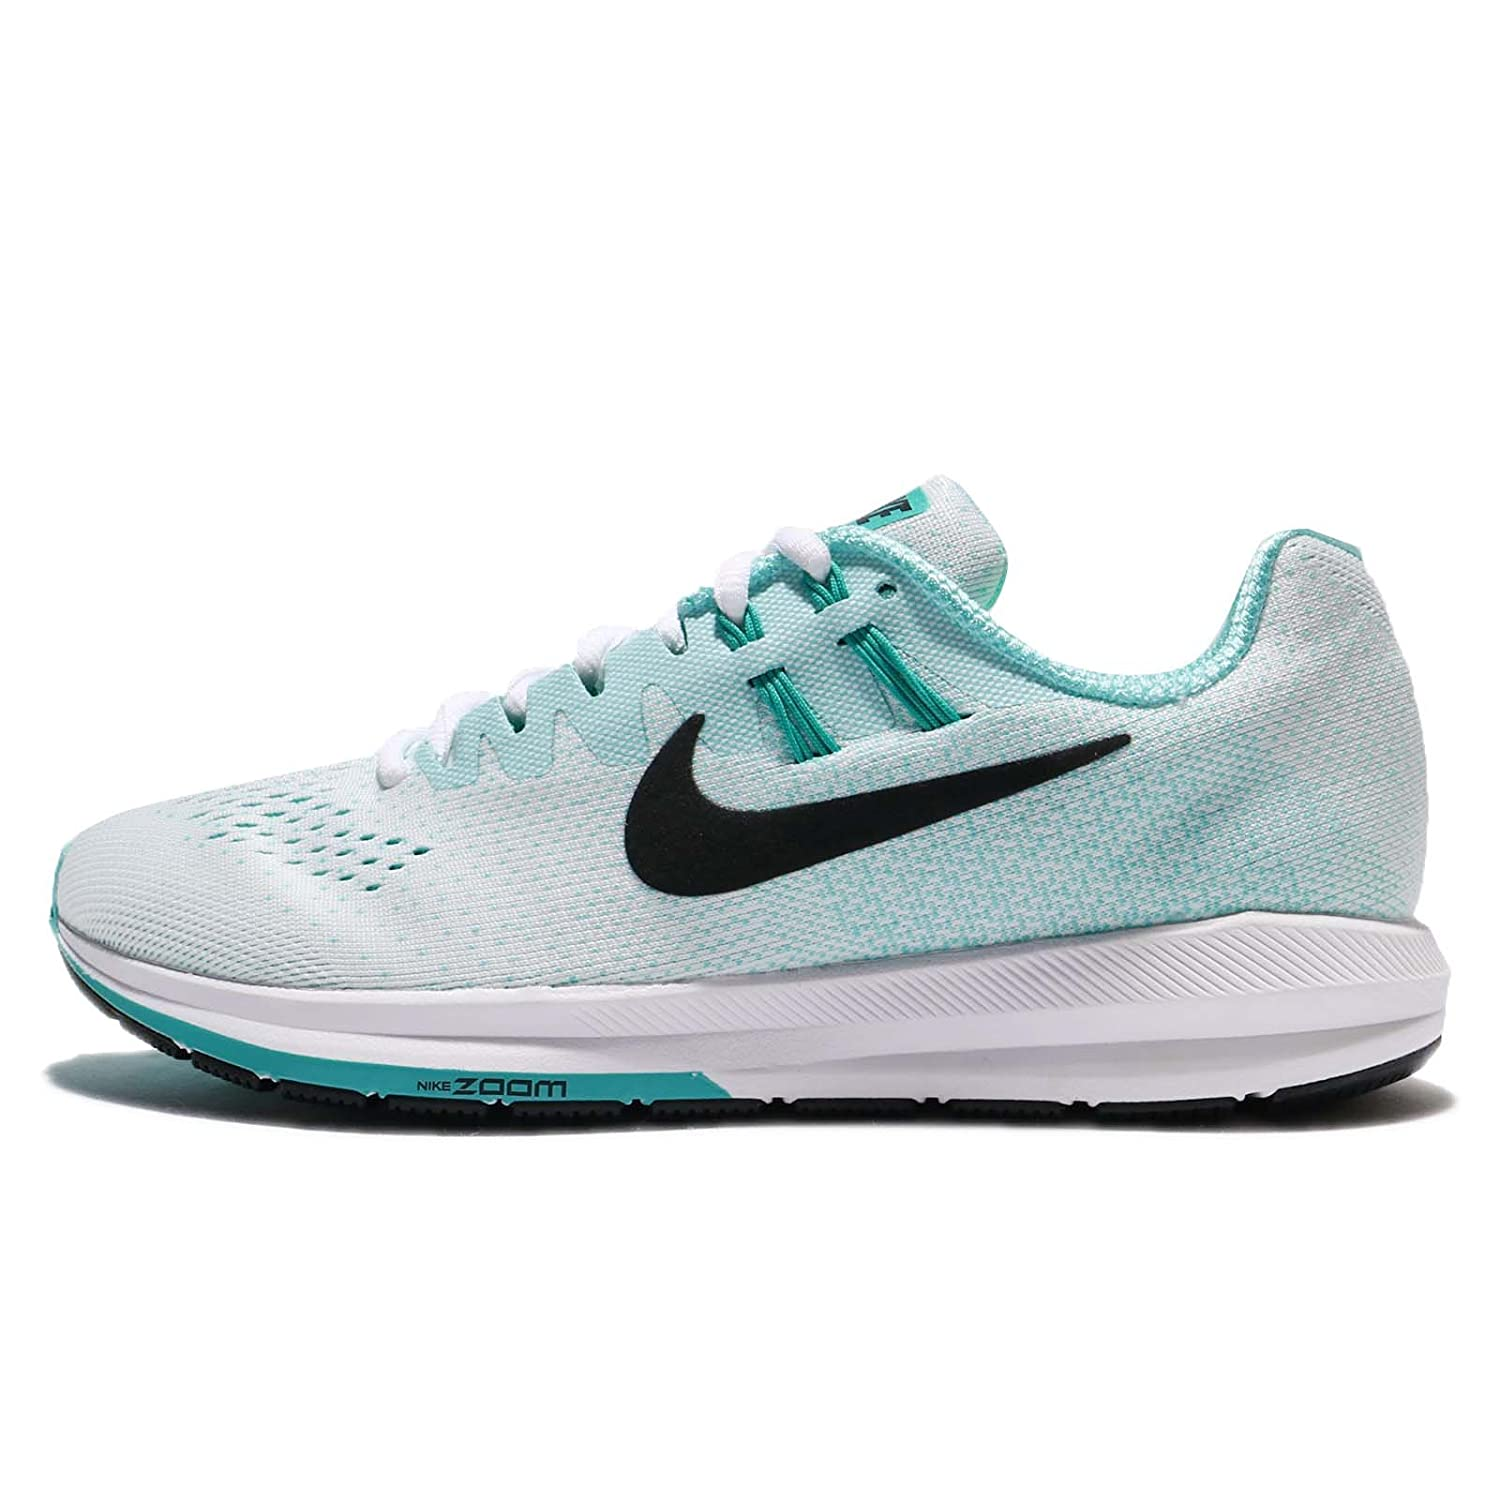 ac556364c2bf6 Amazon.com  Nike Women s Wmns Air Zoom Structure 20